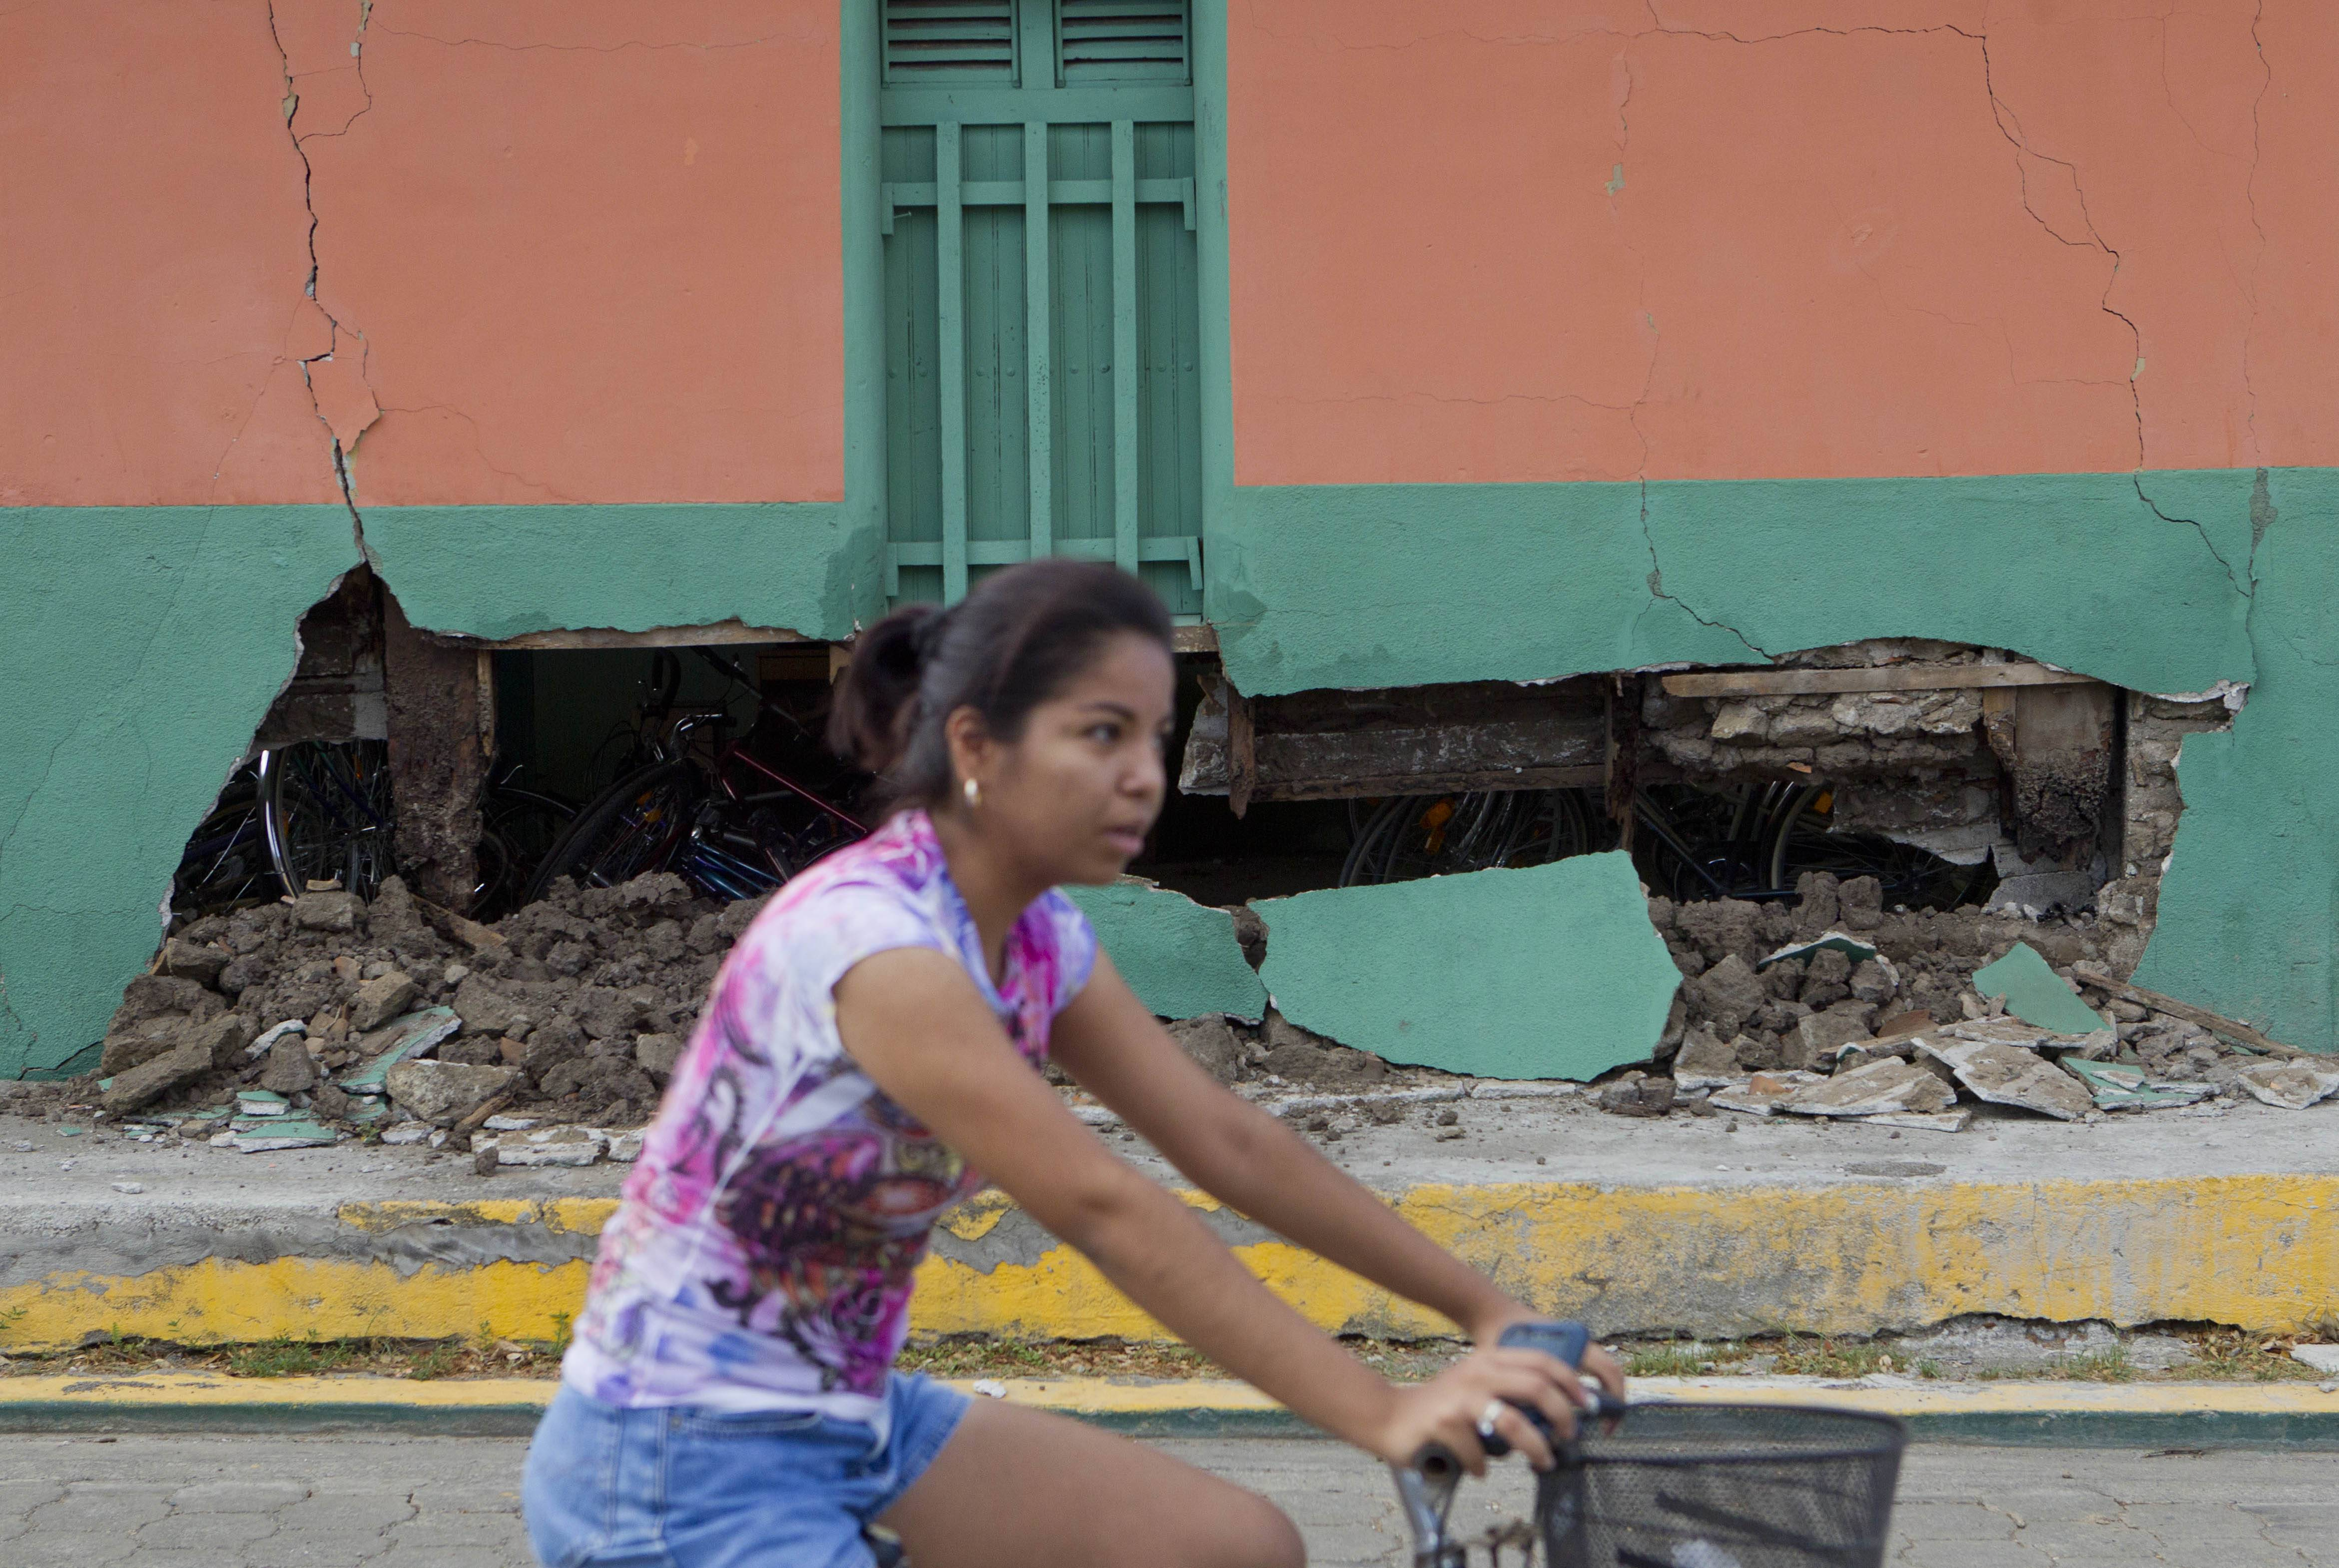 A girl passes by on a bicycle Friday, in front a home damaged by an earthquake in Nagarote, Nicaragua.